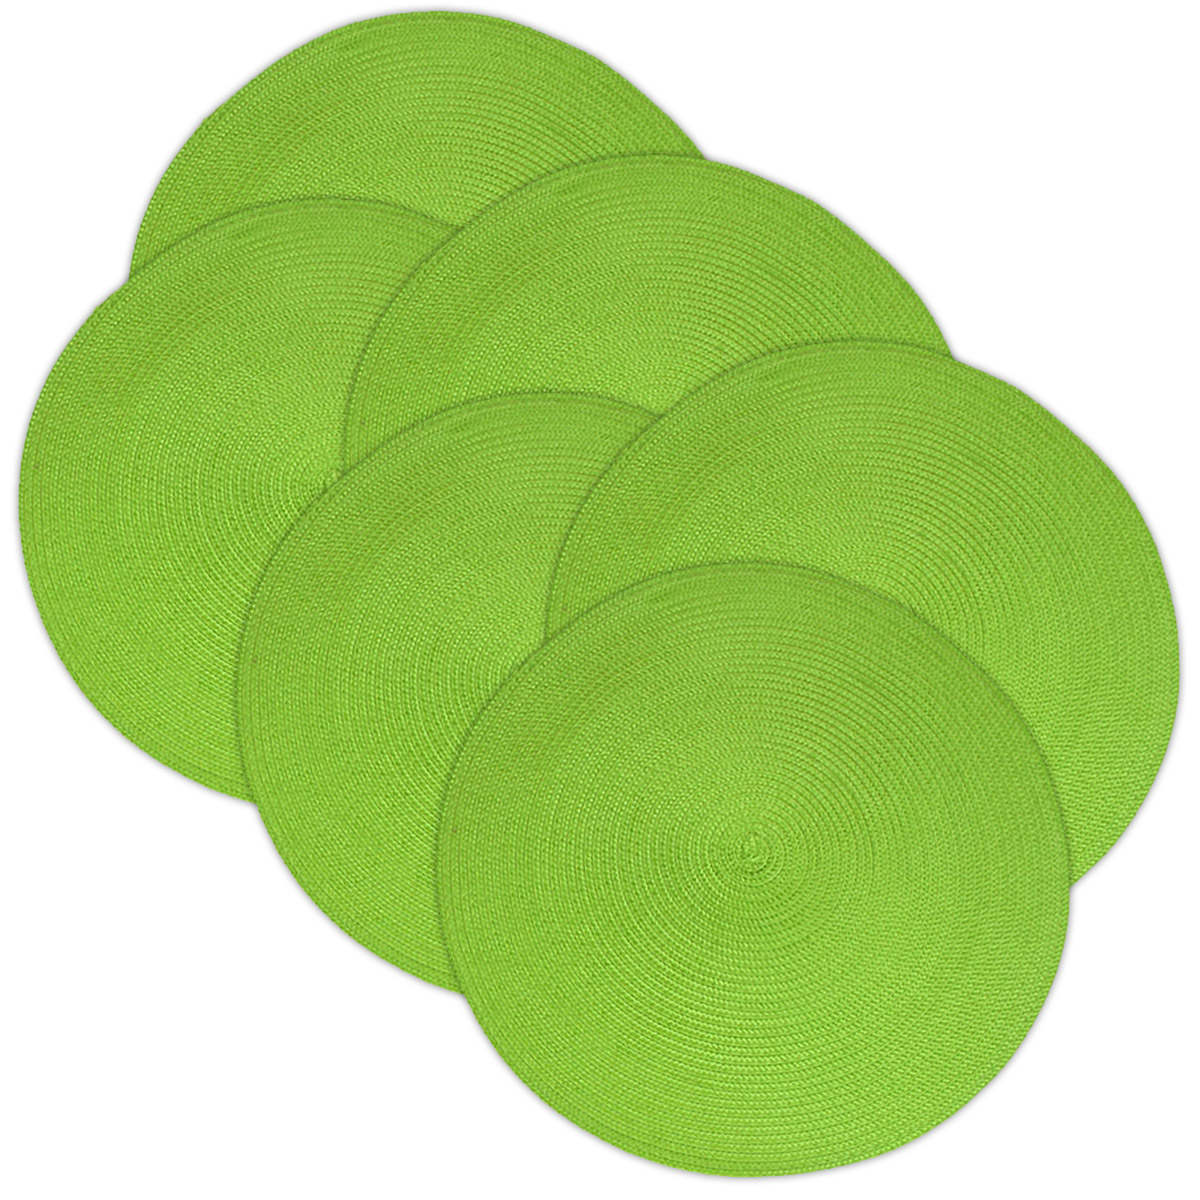 Click here to buy Design Imports Lime Zest Indoor Outdoor Placemat Set of 6 by Supplier Generic.